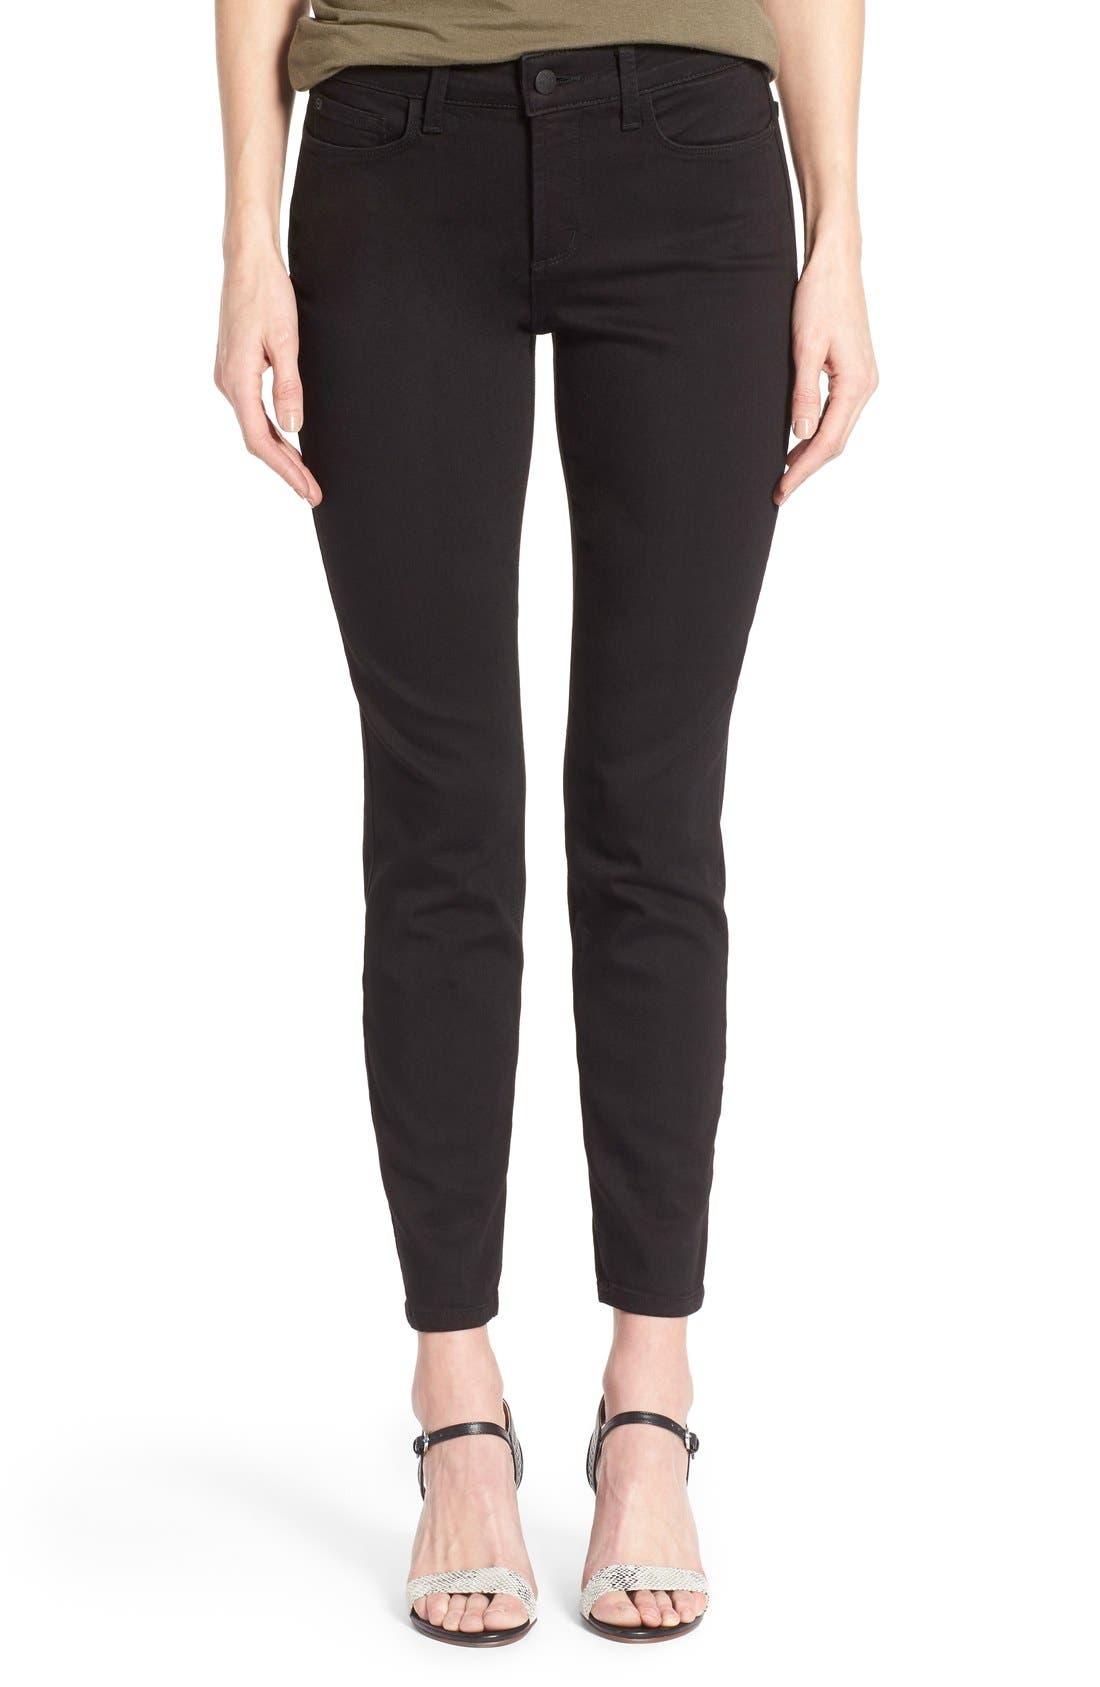 Alternate Image 1 Selected - NYDJ 'Clarissa' Stretch Ankle Skinny Jeans (Black Garment)